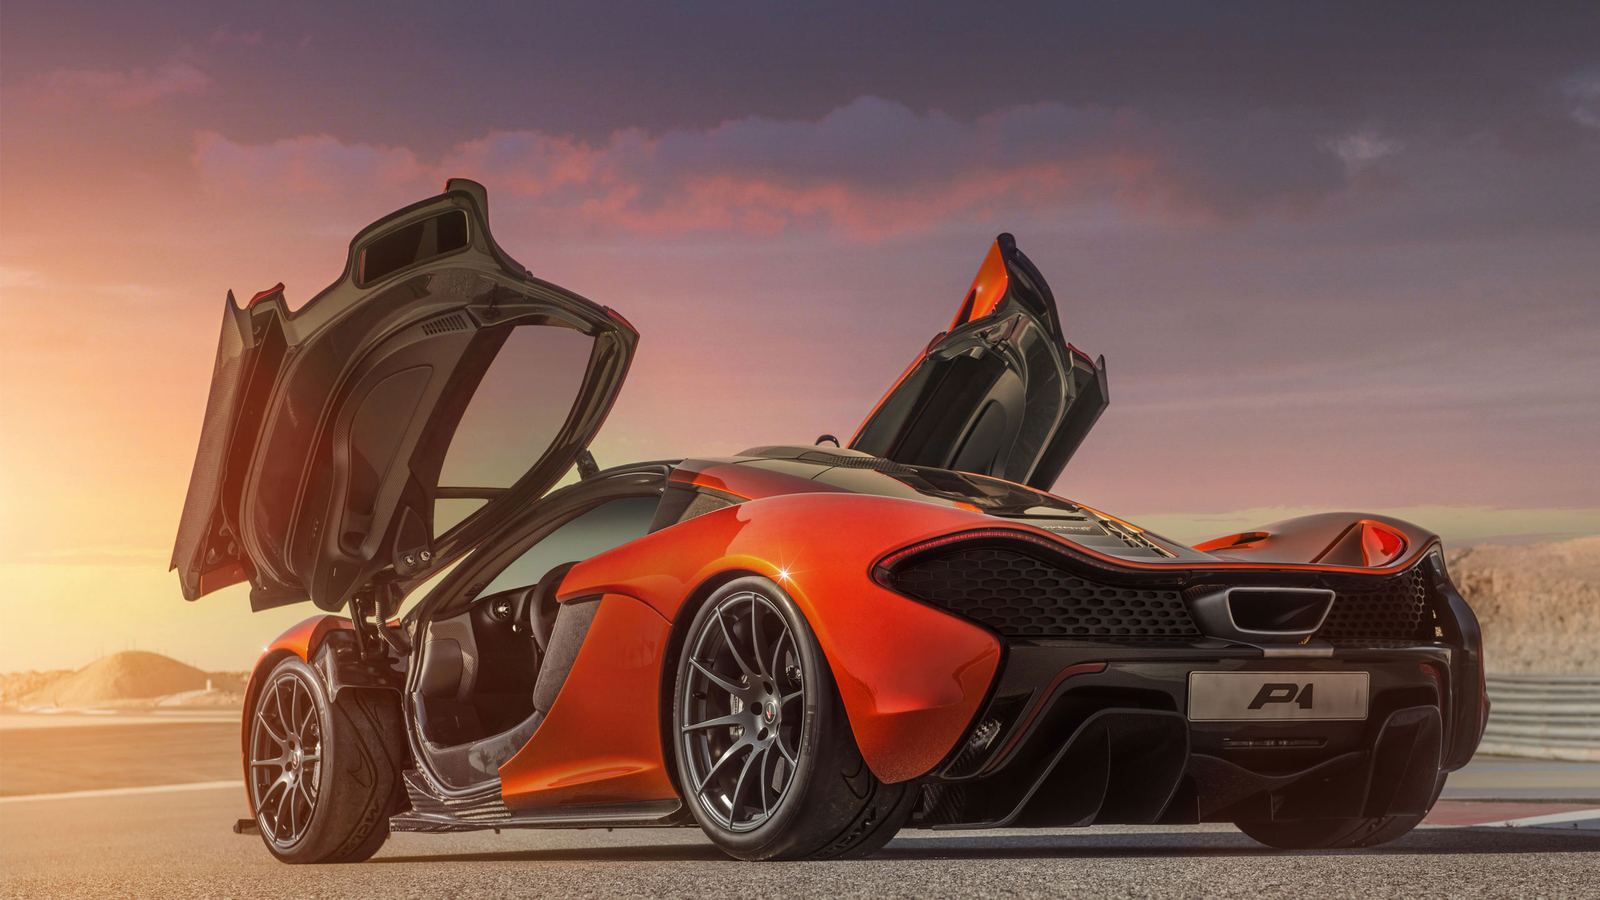 McLaren supercar wallpaper download 49656